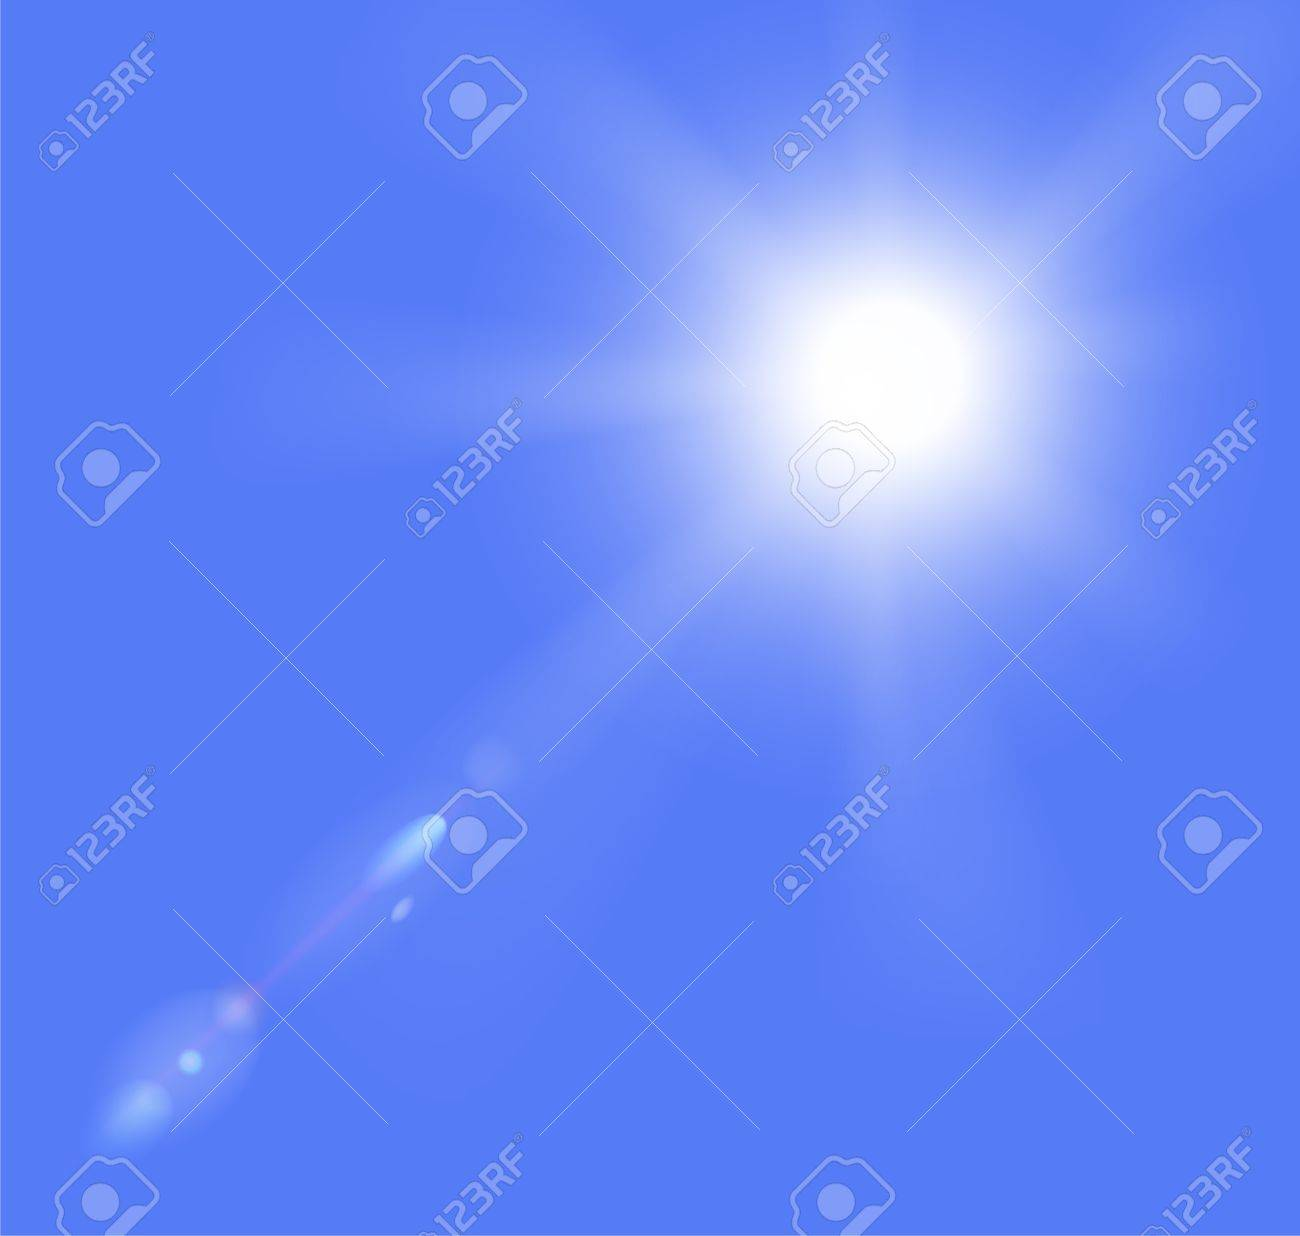 illustration of sun and clouds on a blue sky  Gradient mesh used Stock Vector - 17558865